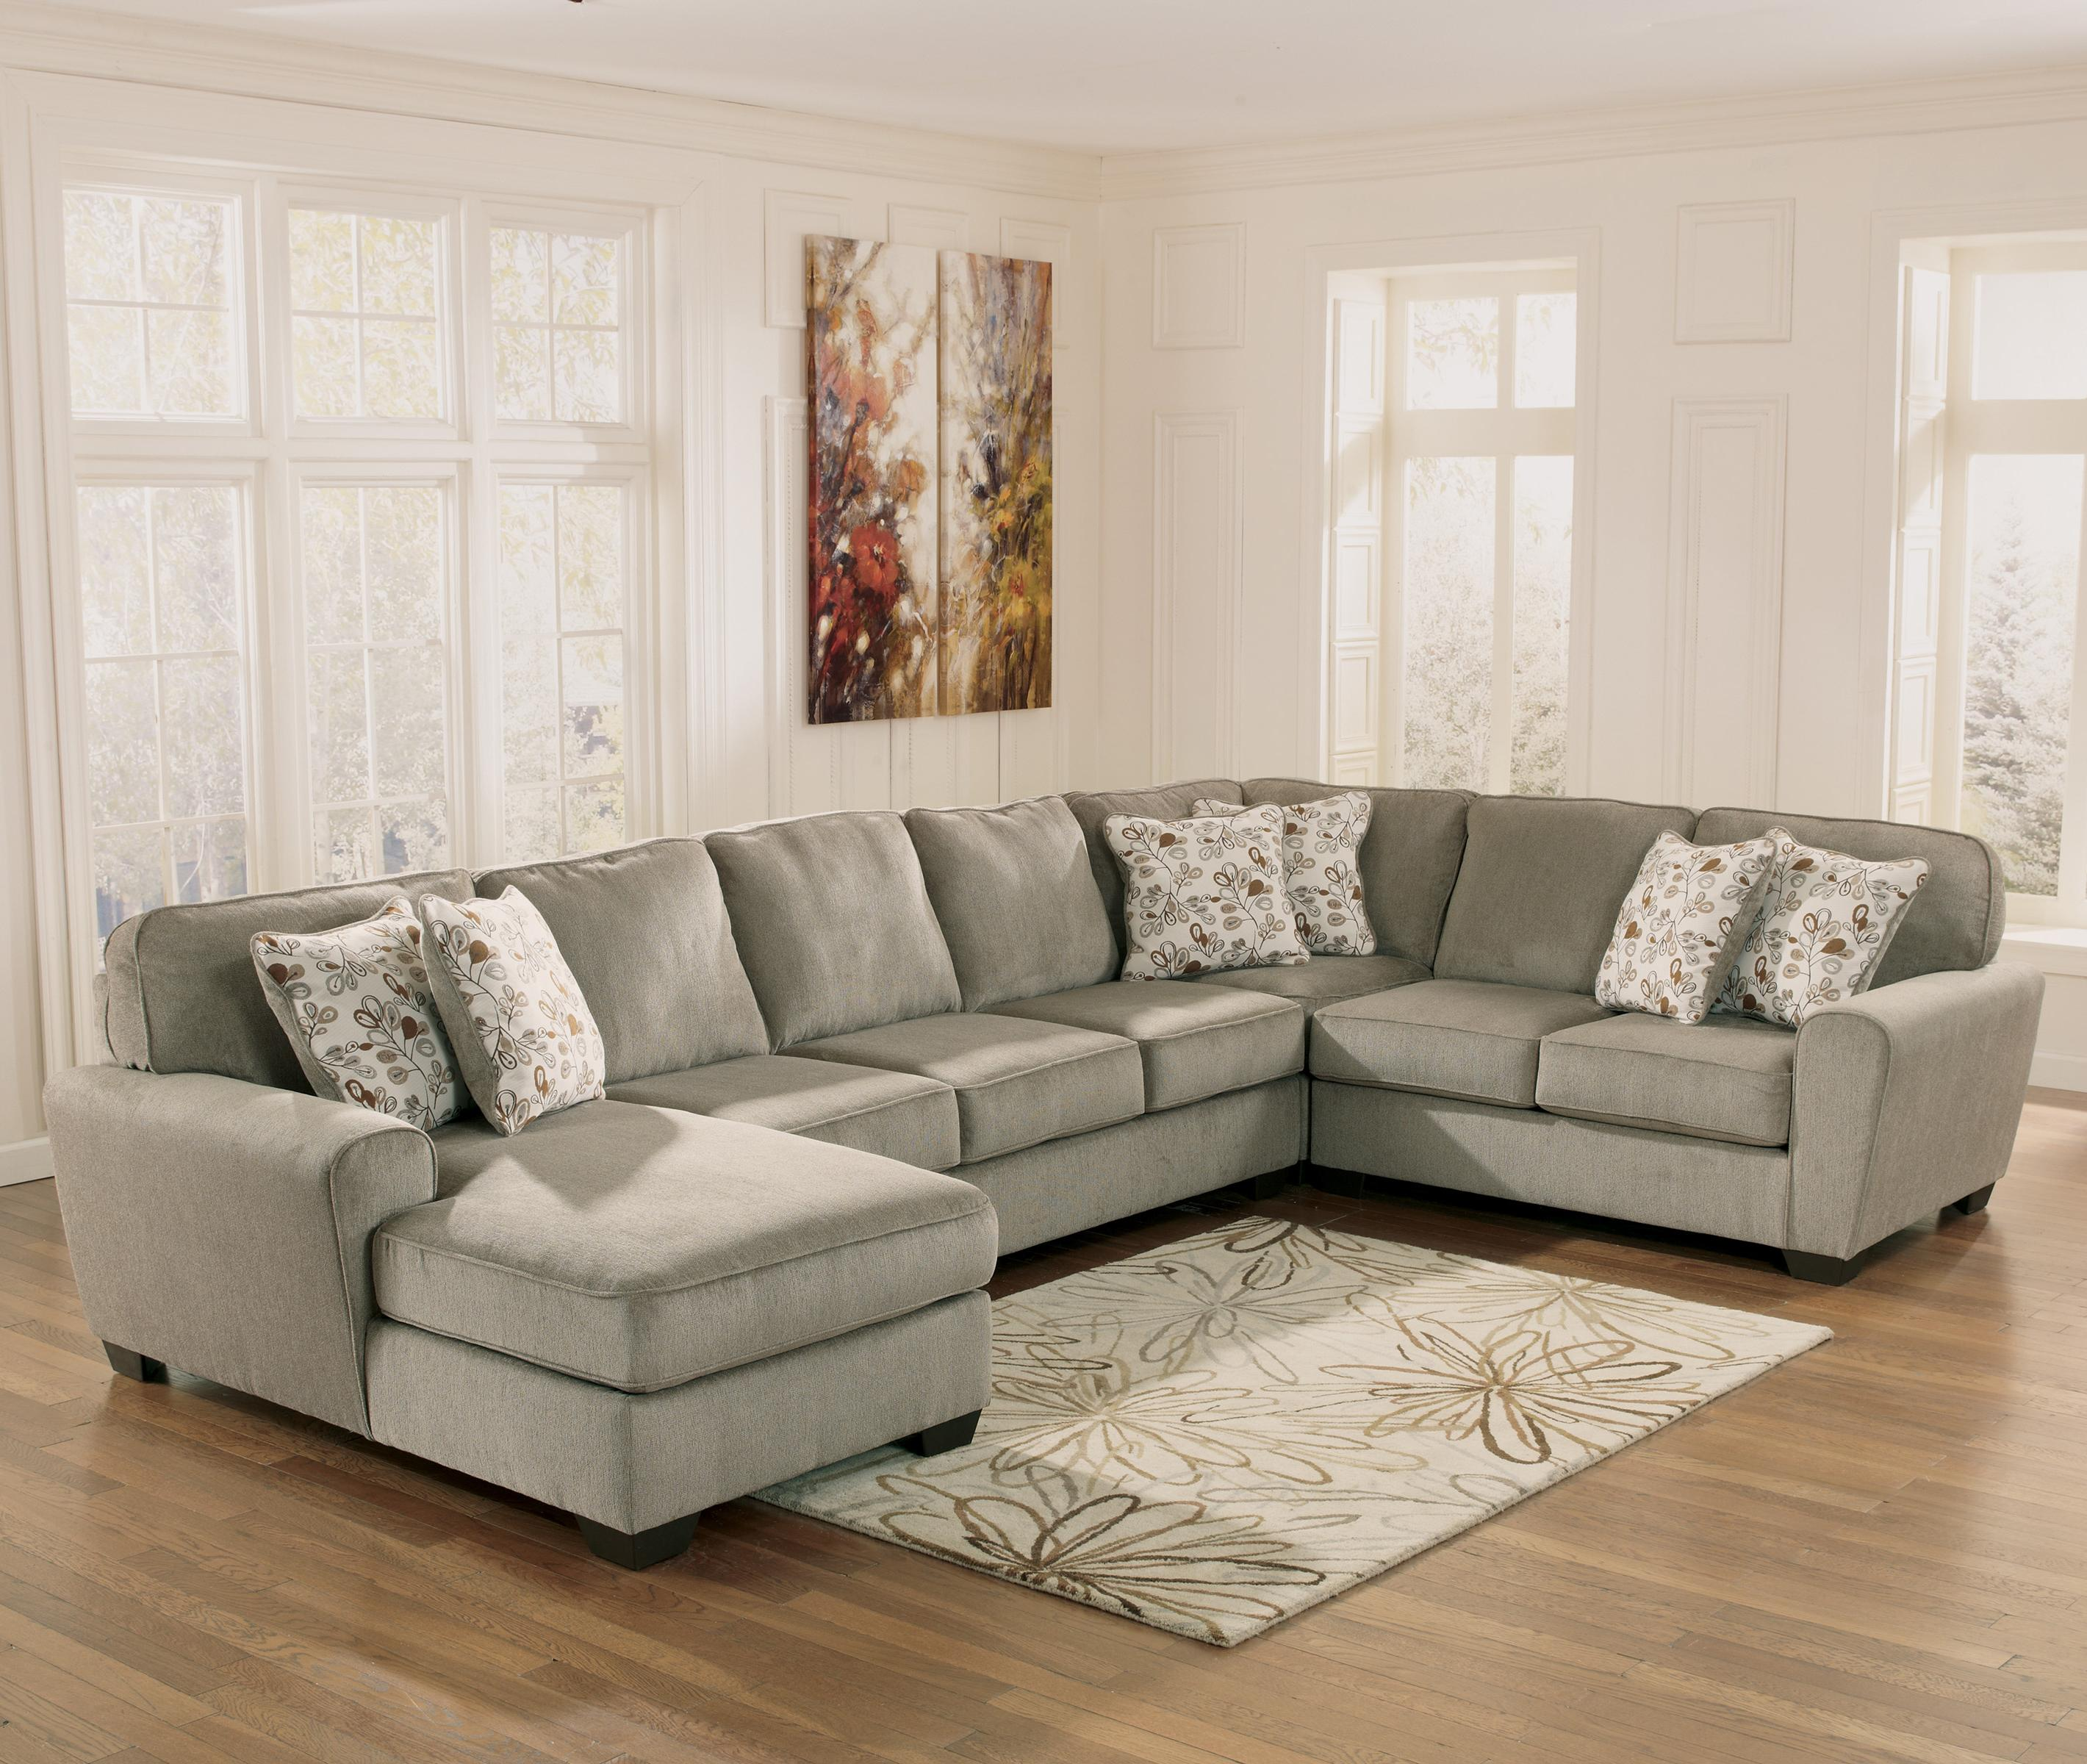 Ashley furniture patola park patina 4 piece sectional for 4 living furniture